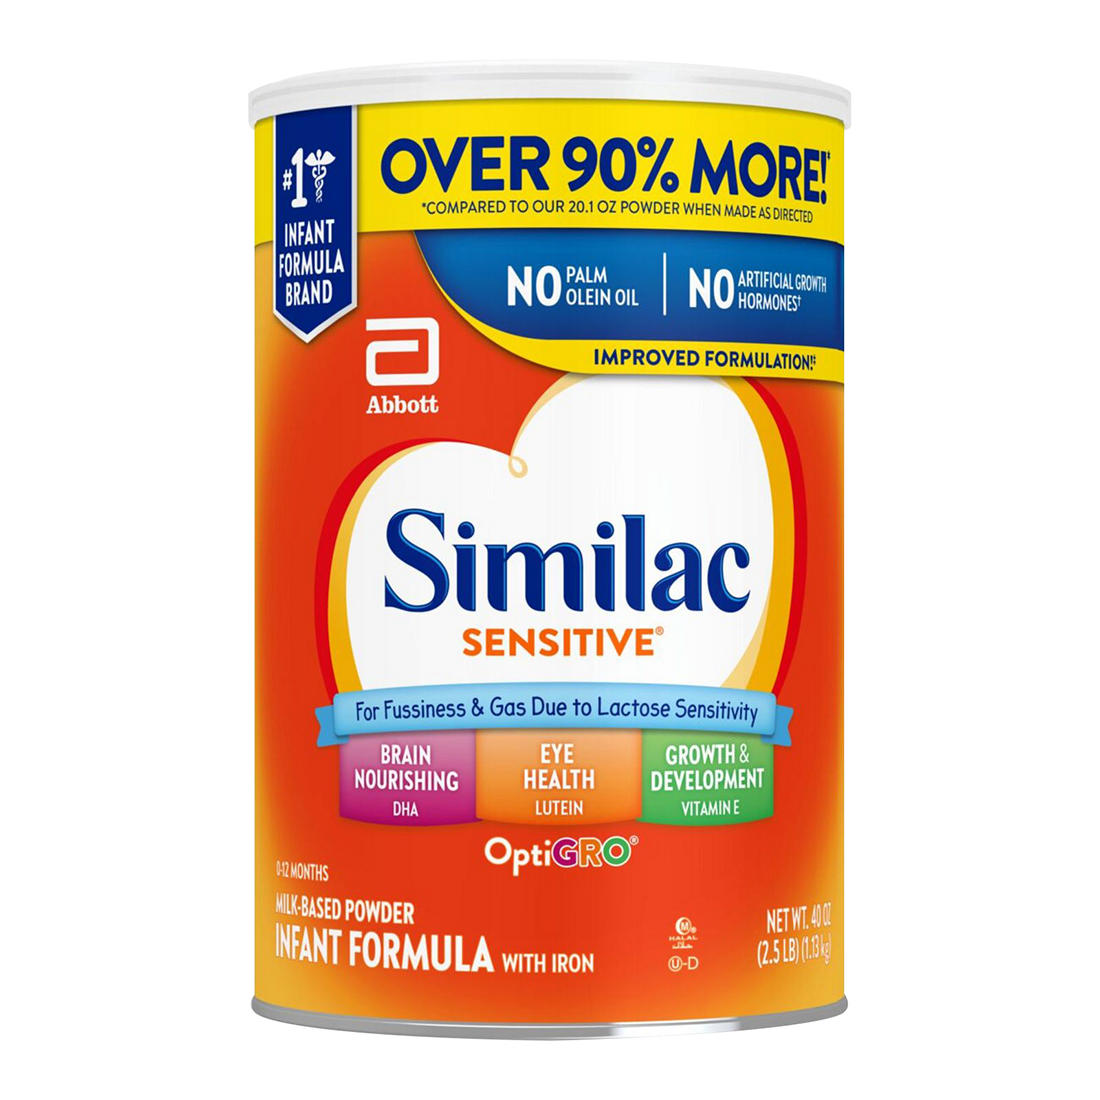 photograph regarding $5 Similac Printable Coupon identified as Similac Delicate For Fussiness and Gasoline Child System with Iron Powder, 40 oz.